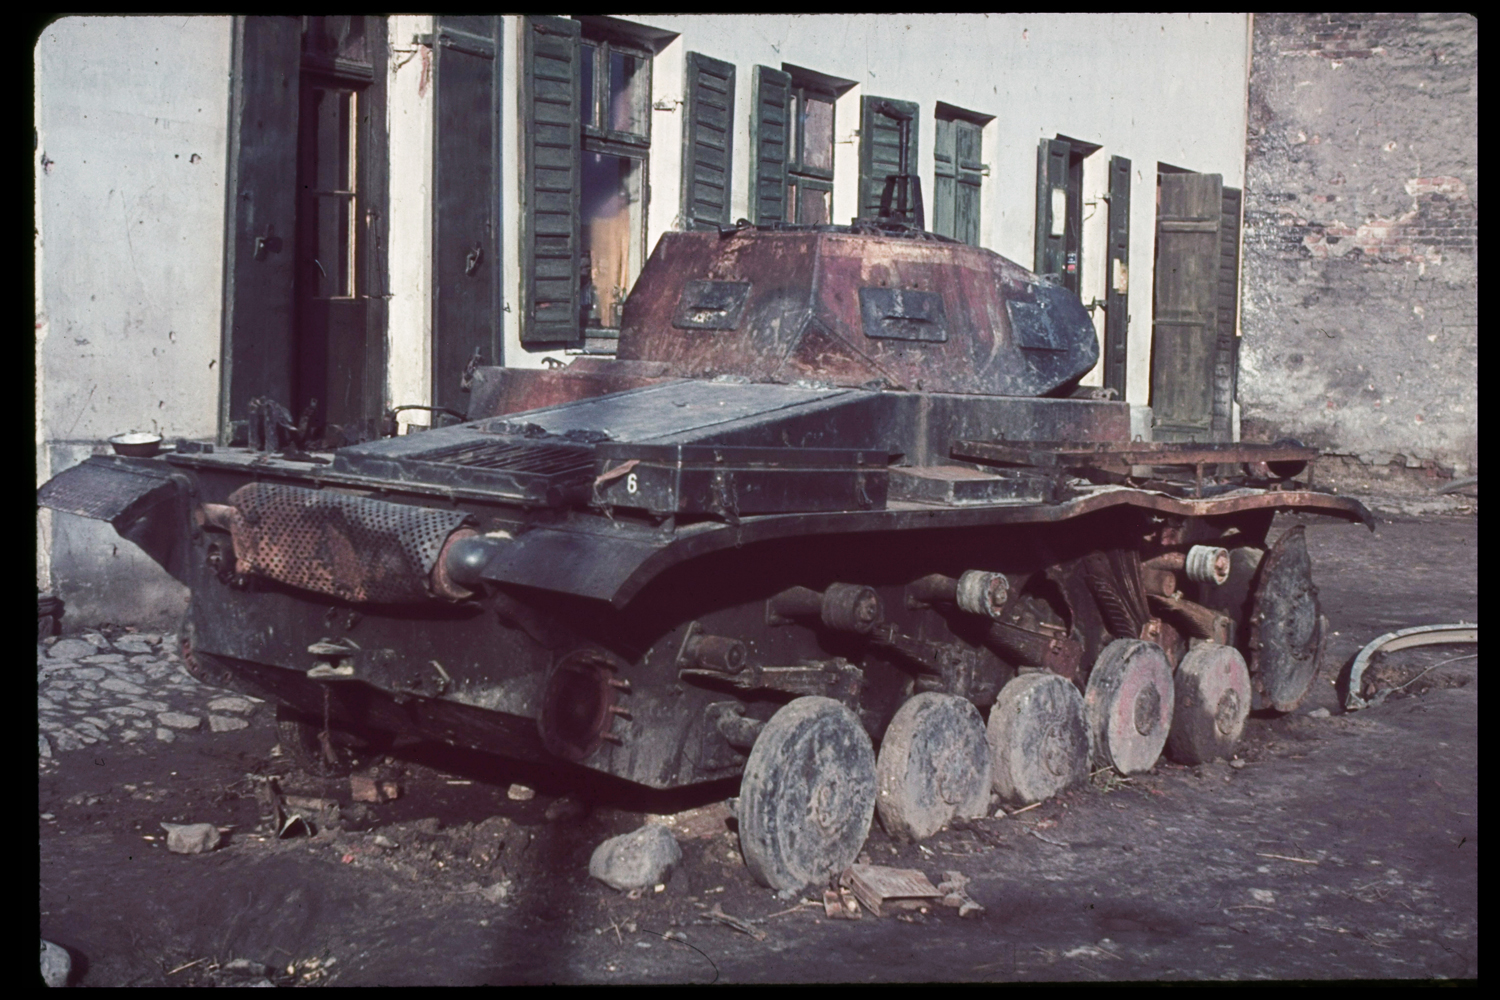 Burned-out tank, Warsaw, 1939.